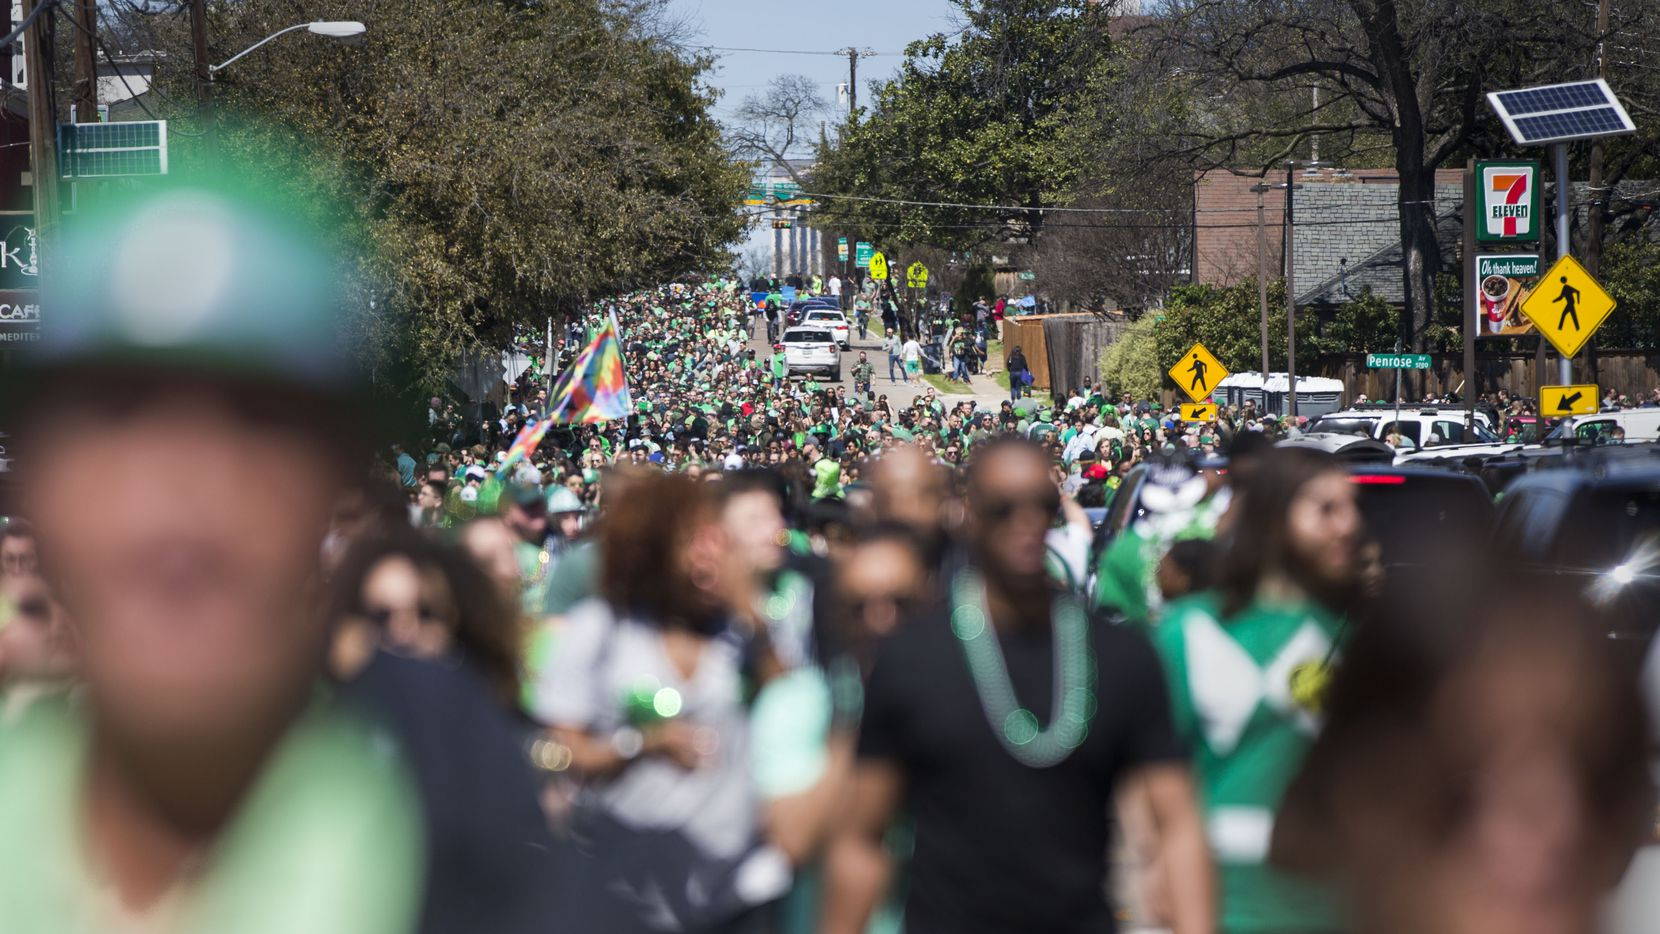 The Dallas St. Patrick's Day Parade & Festival is a spirited day in Dallas. After the parade, many revelers walk down Greenville Avenue to the block party on the south side of Mockingbird Lane. The parade has been canceled for March 13, 2021, for a second year in a row, because of the fear of spreading COVID-19.